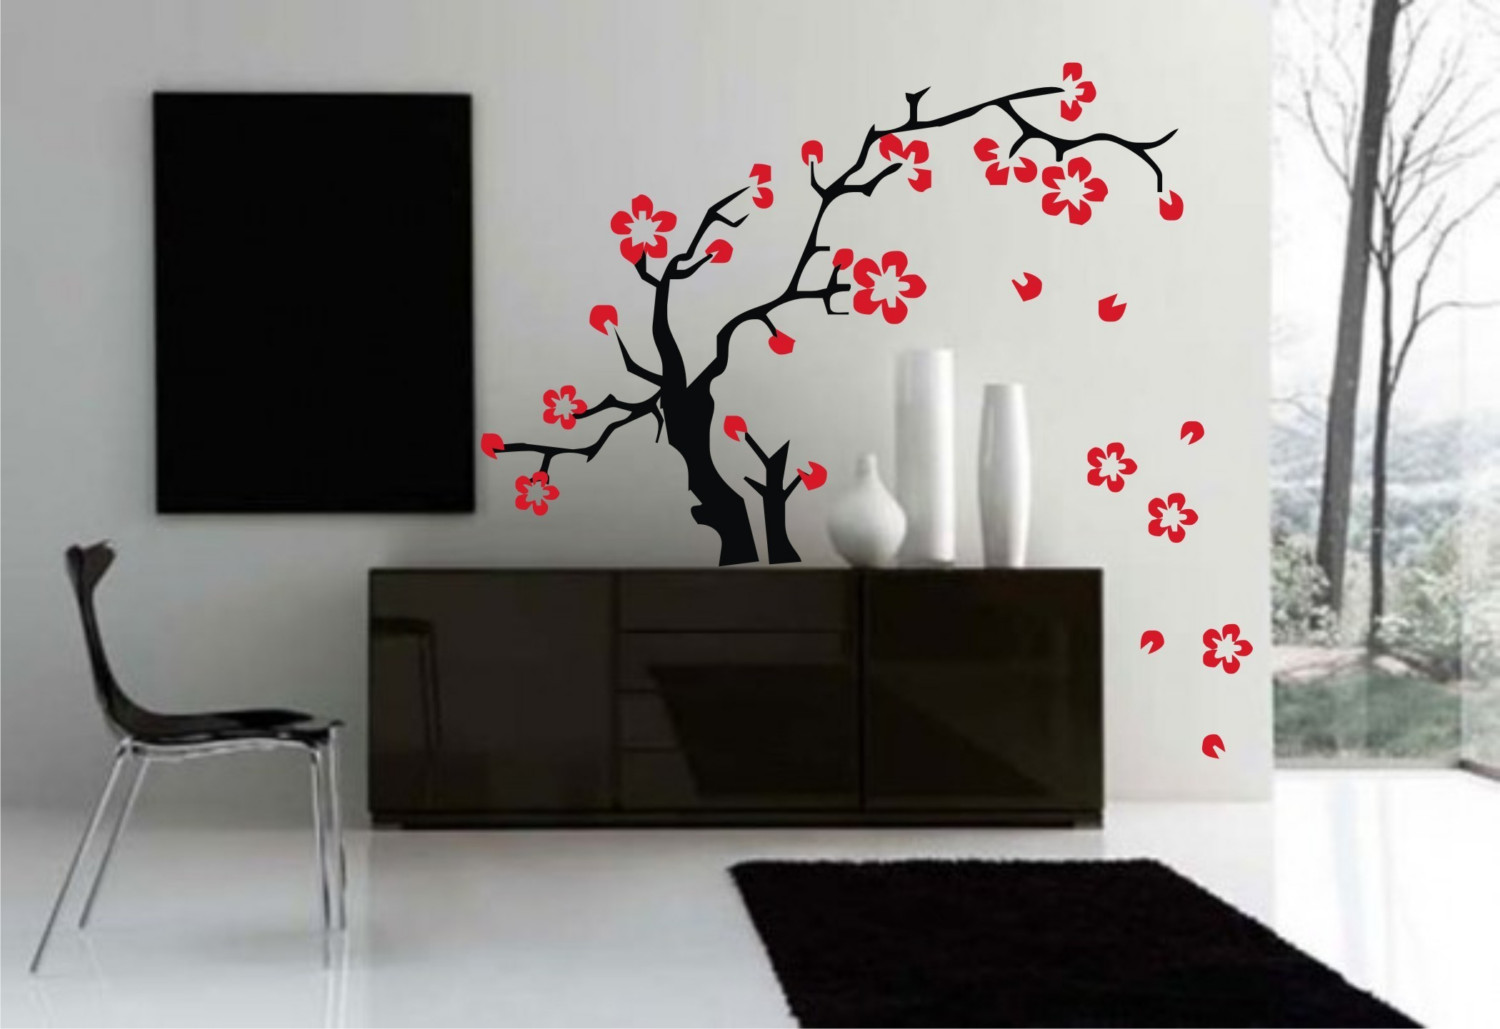 wallpaper wall design hirshfield s 10 idei de decorare a pereților 243